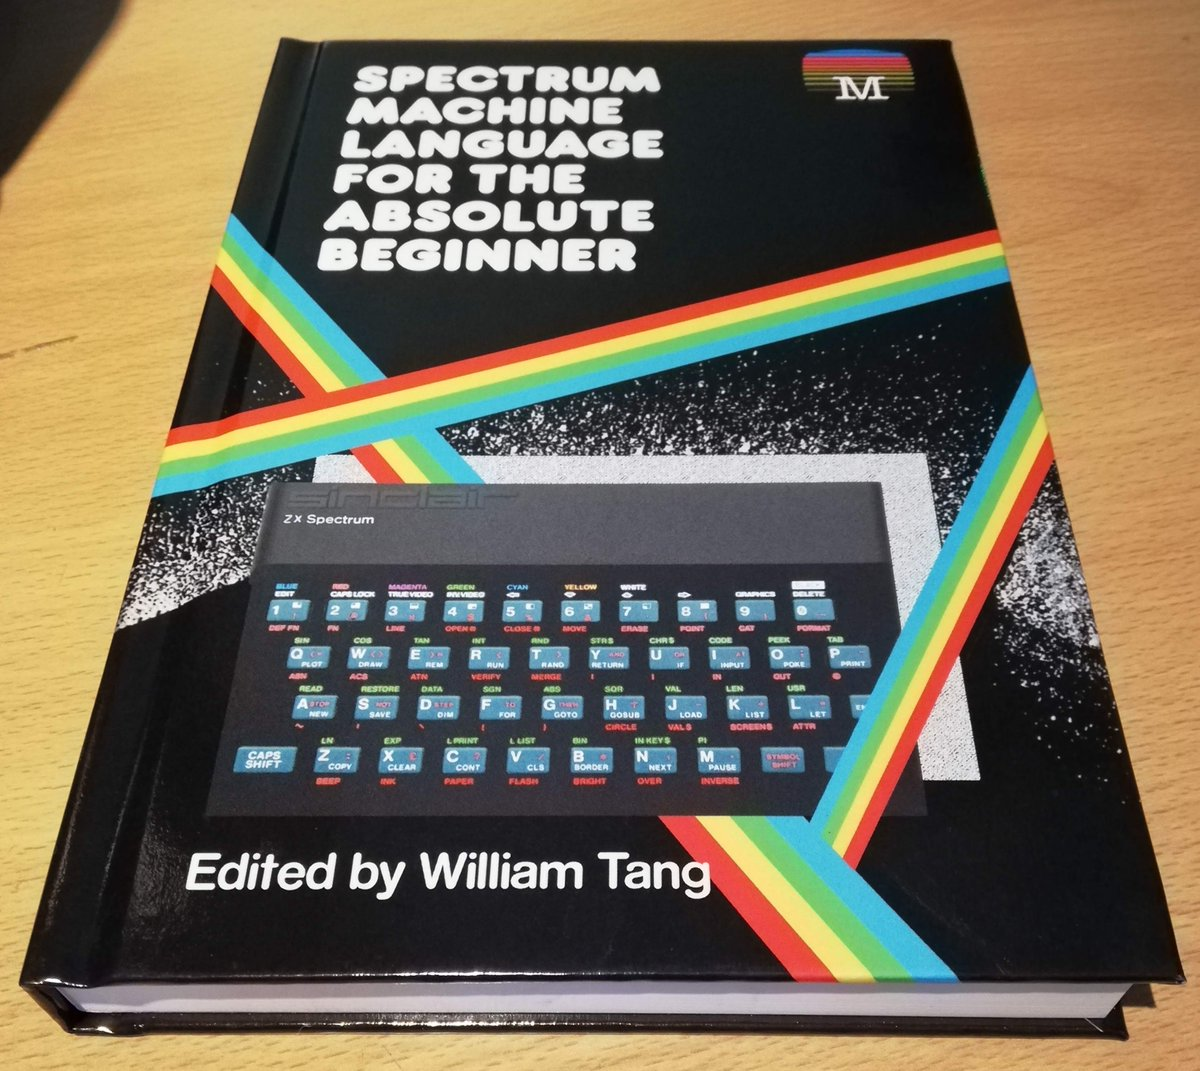 This whole book is monospace type. #hardcore Still, I reckon if I study hard enough, I might make a career in it... https://t.co/PSskO9ZEnn